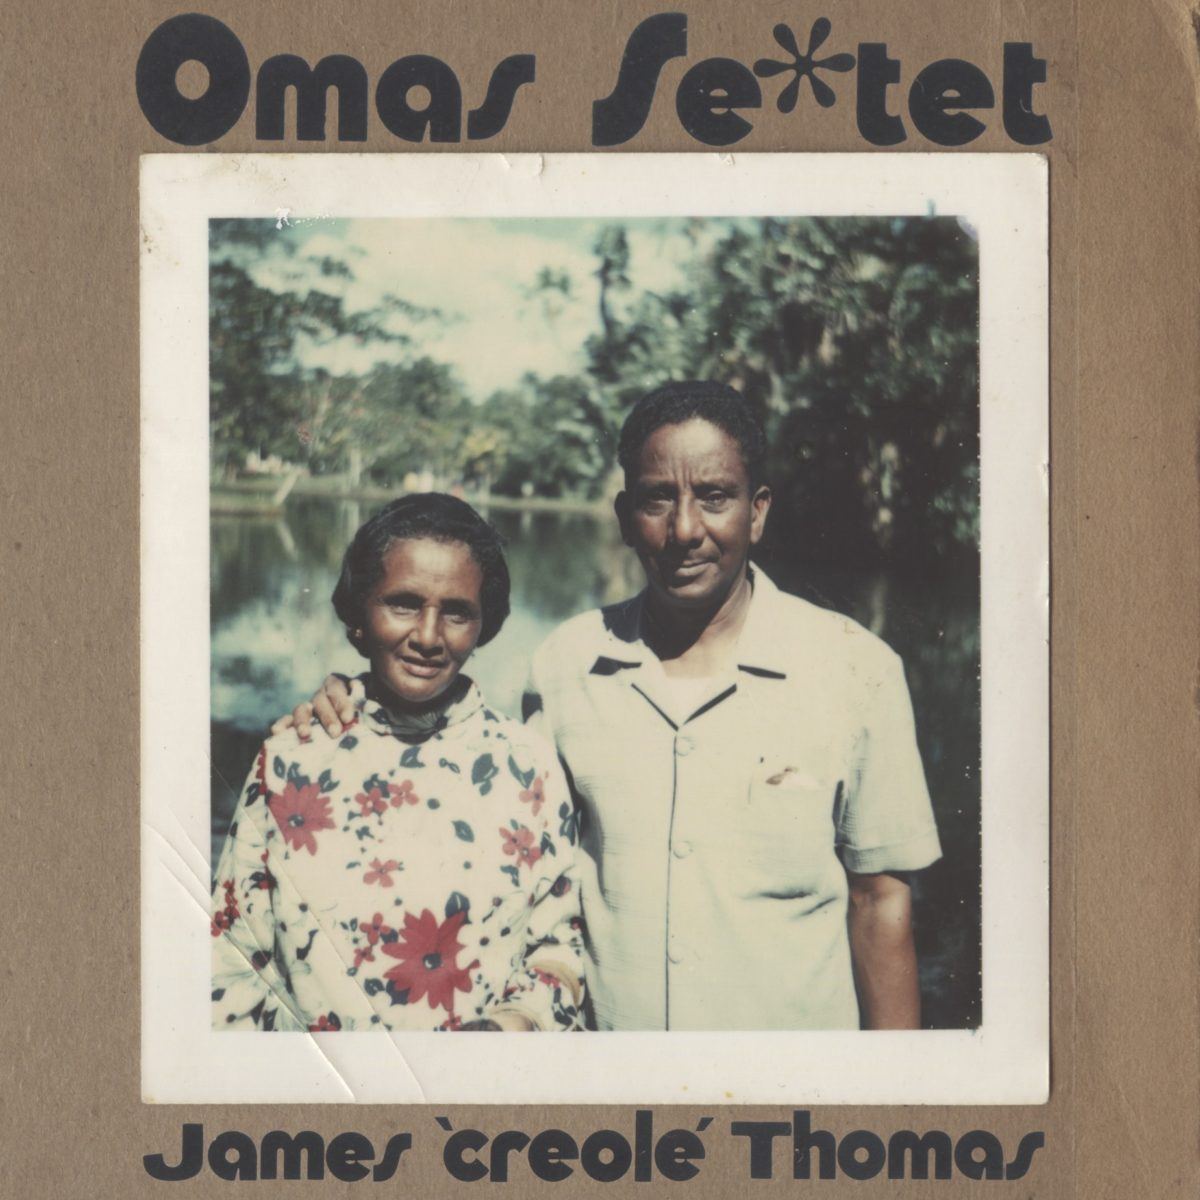 James 'Creole' Thomas - Omas Sextet